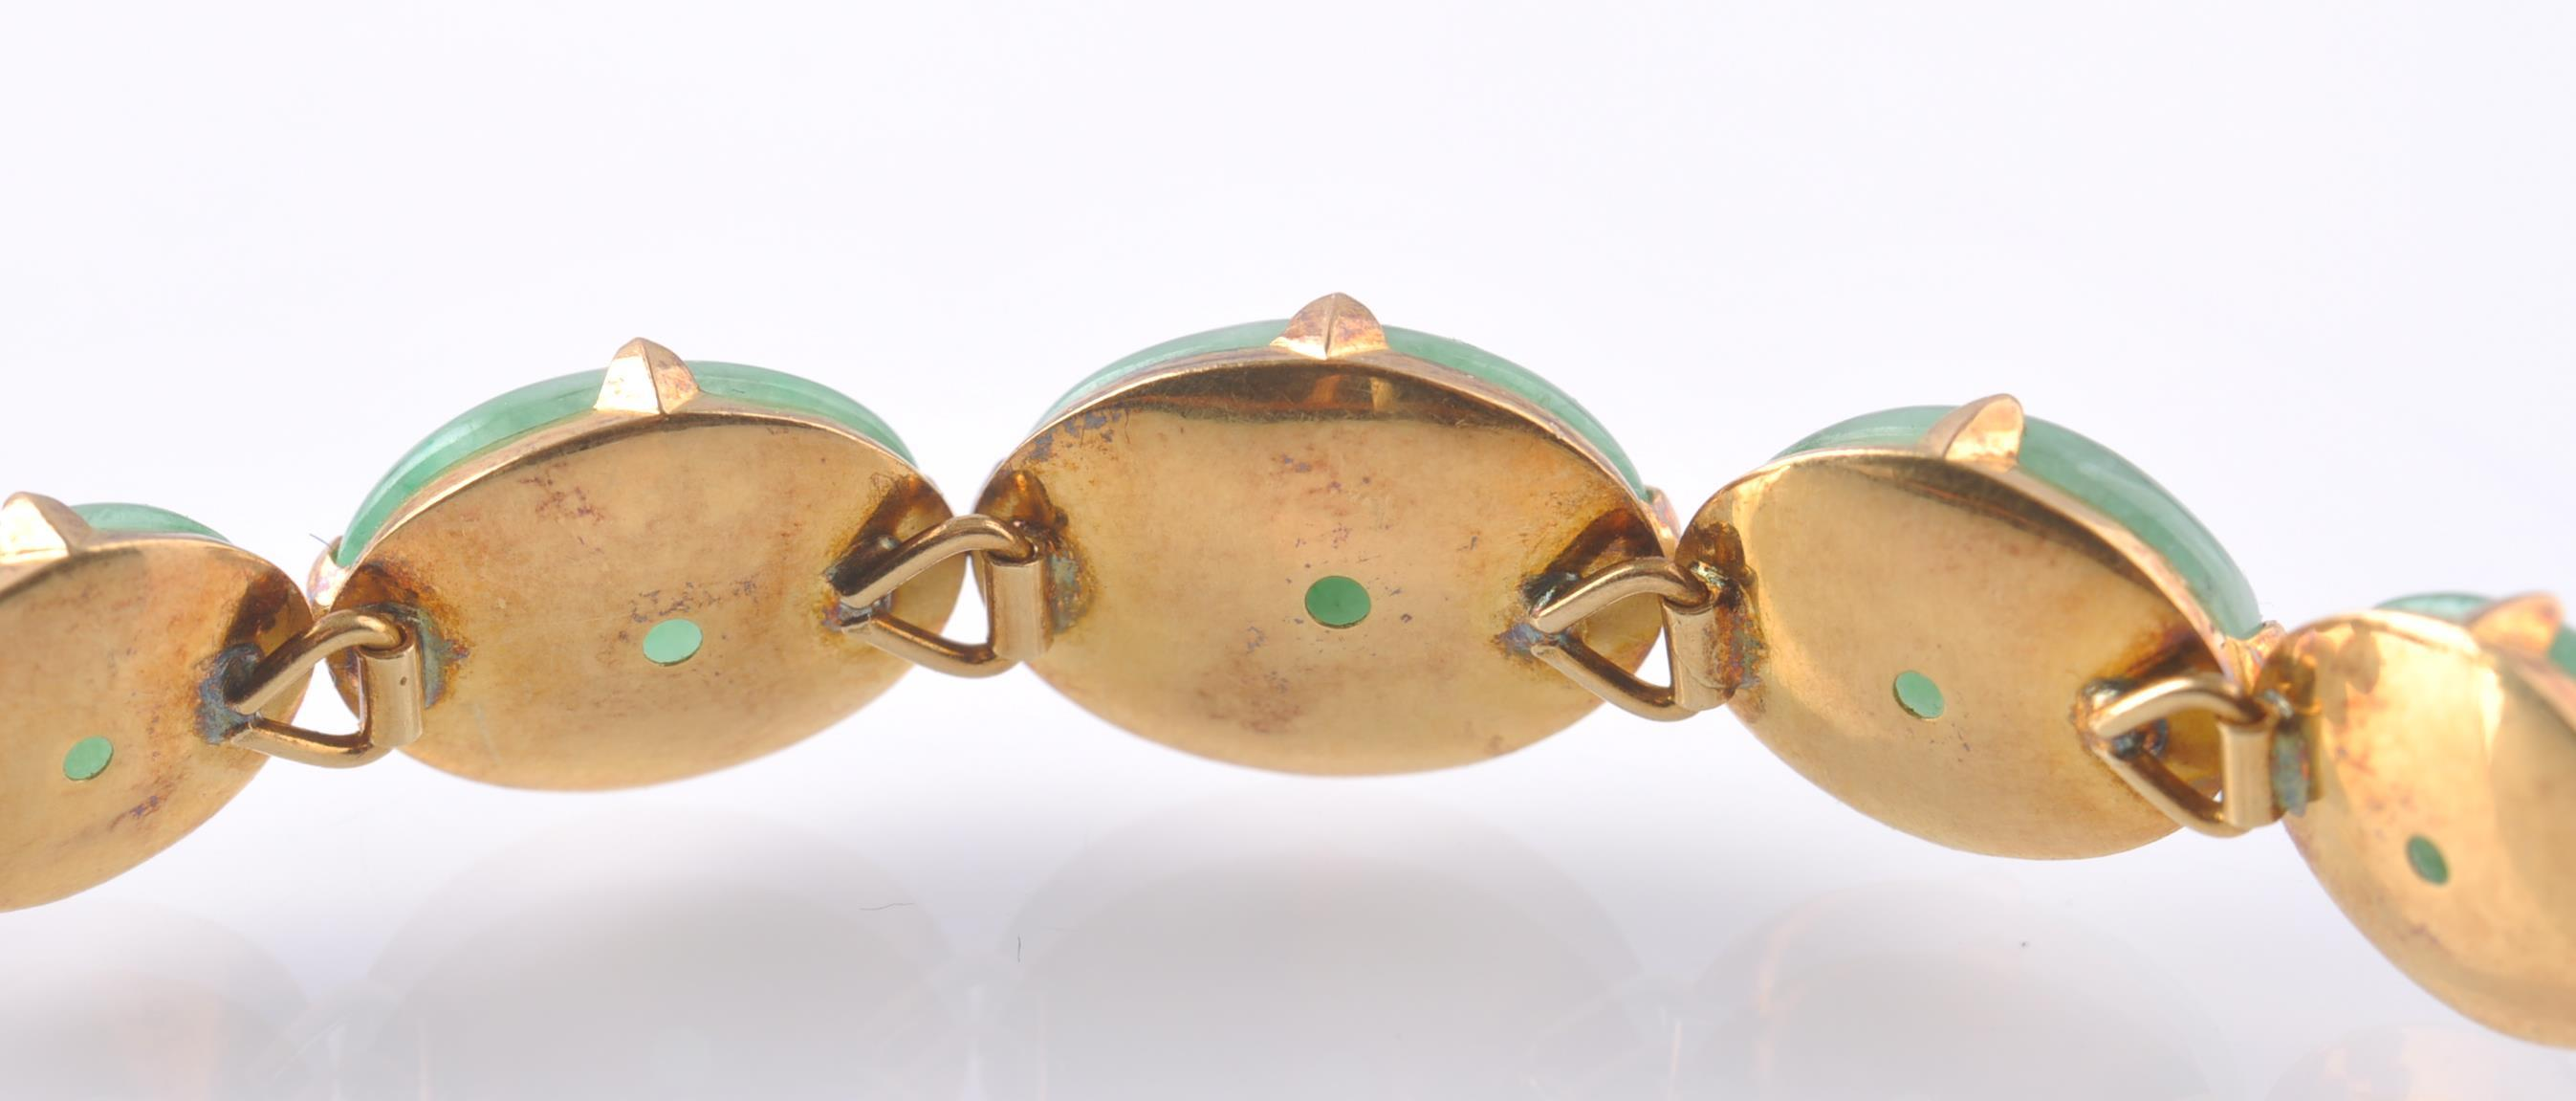 Lot 47 - A GOLD & NATURAL JADE BRACELET WITH 5 JADE CABOCHO